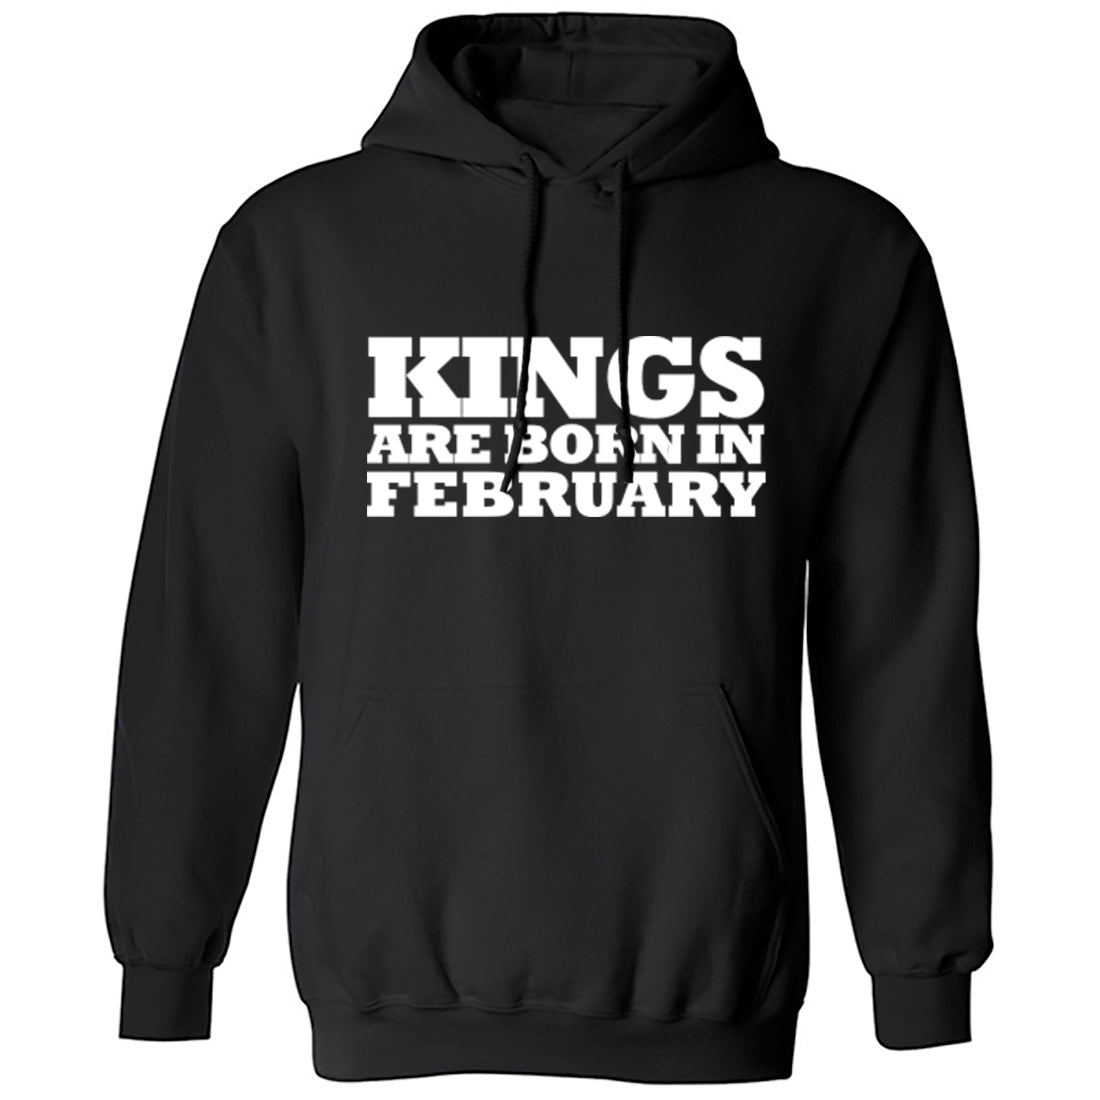 Kings Are Born In February Unisex Hoodie K1685 - Illustrated Identity Ltd.